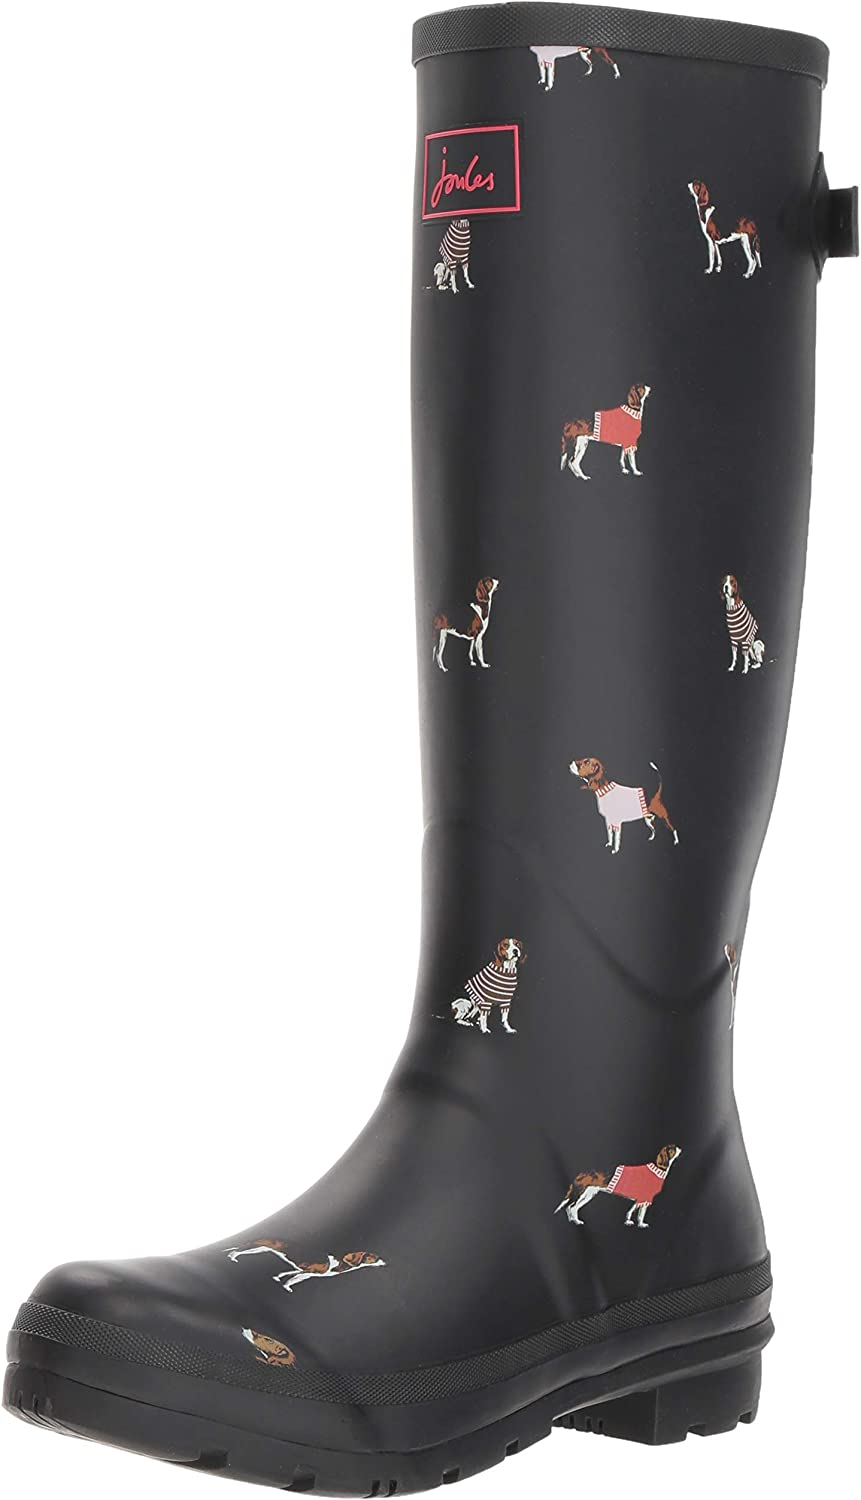 Joules Welly Print Womens Boots Black